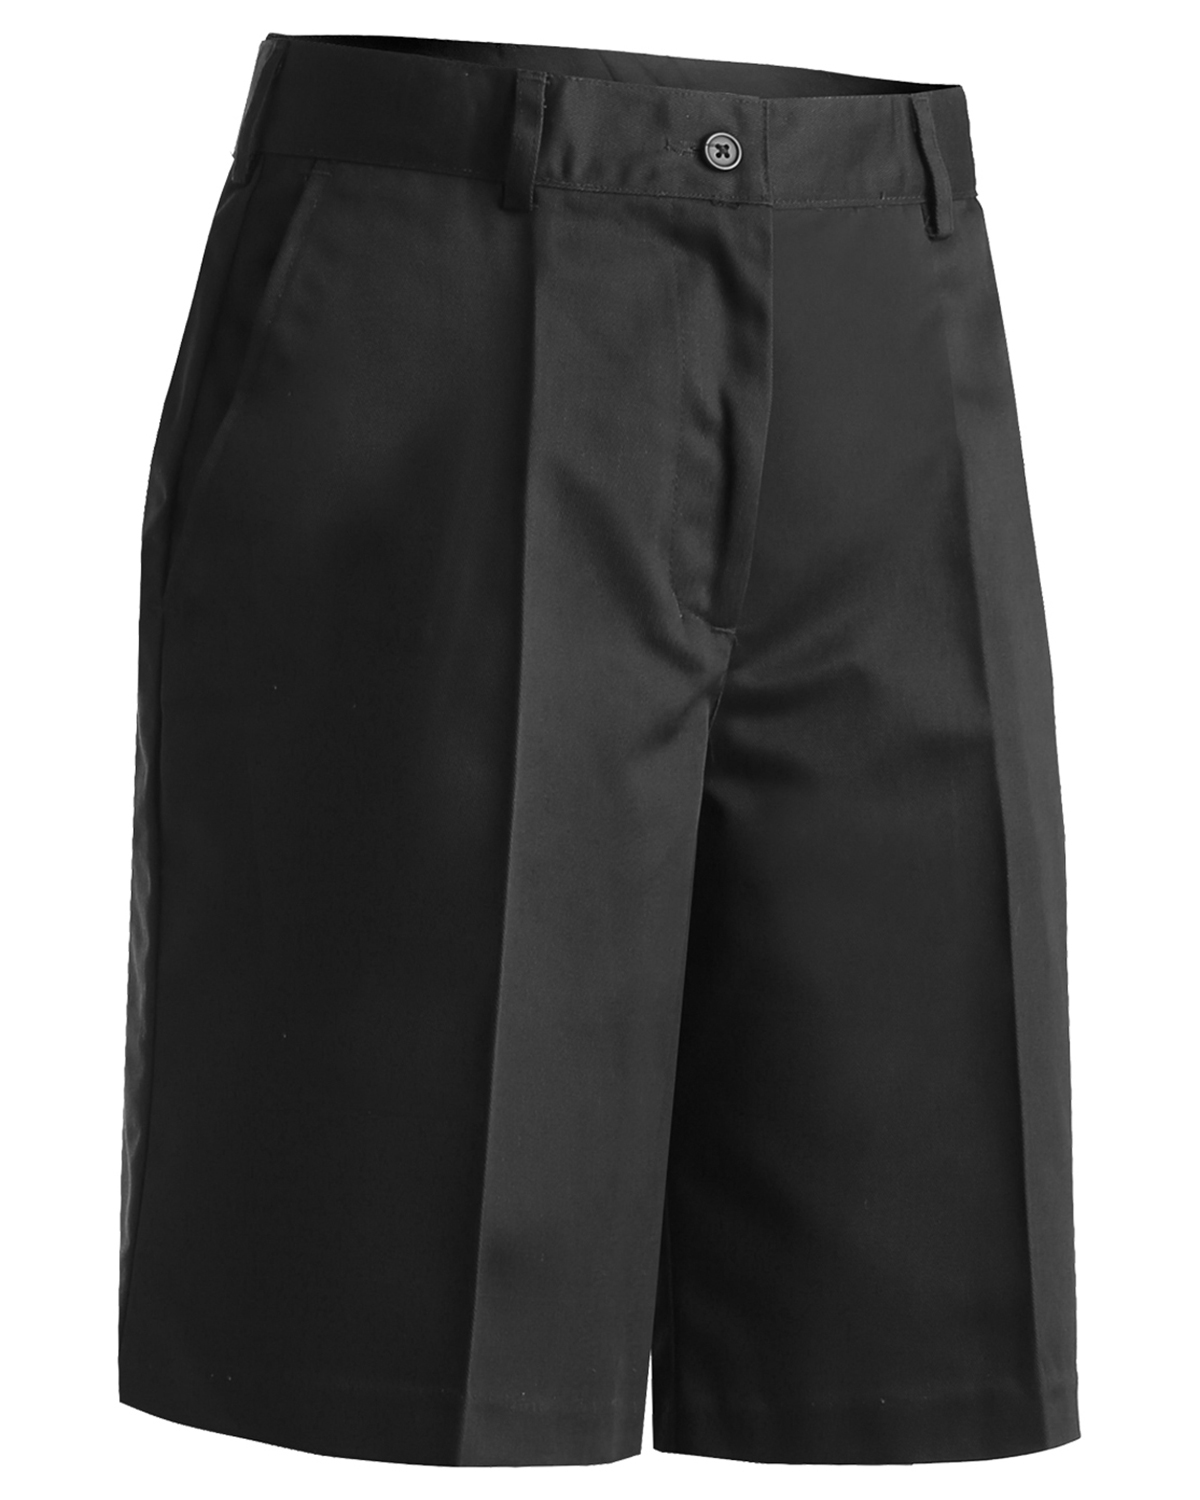 Edwards 8465 Women's Flat Front Brass Zipper Wrinkle Resistant Chino Blend Short at GotApparel